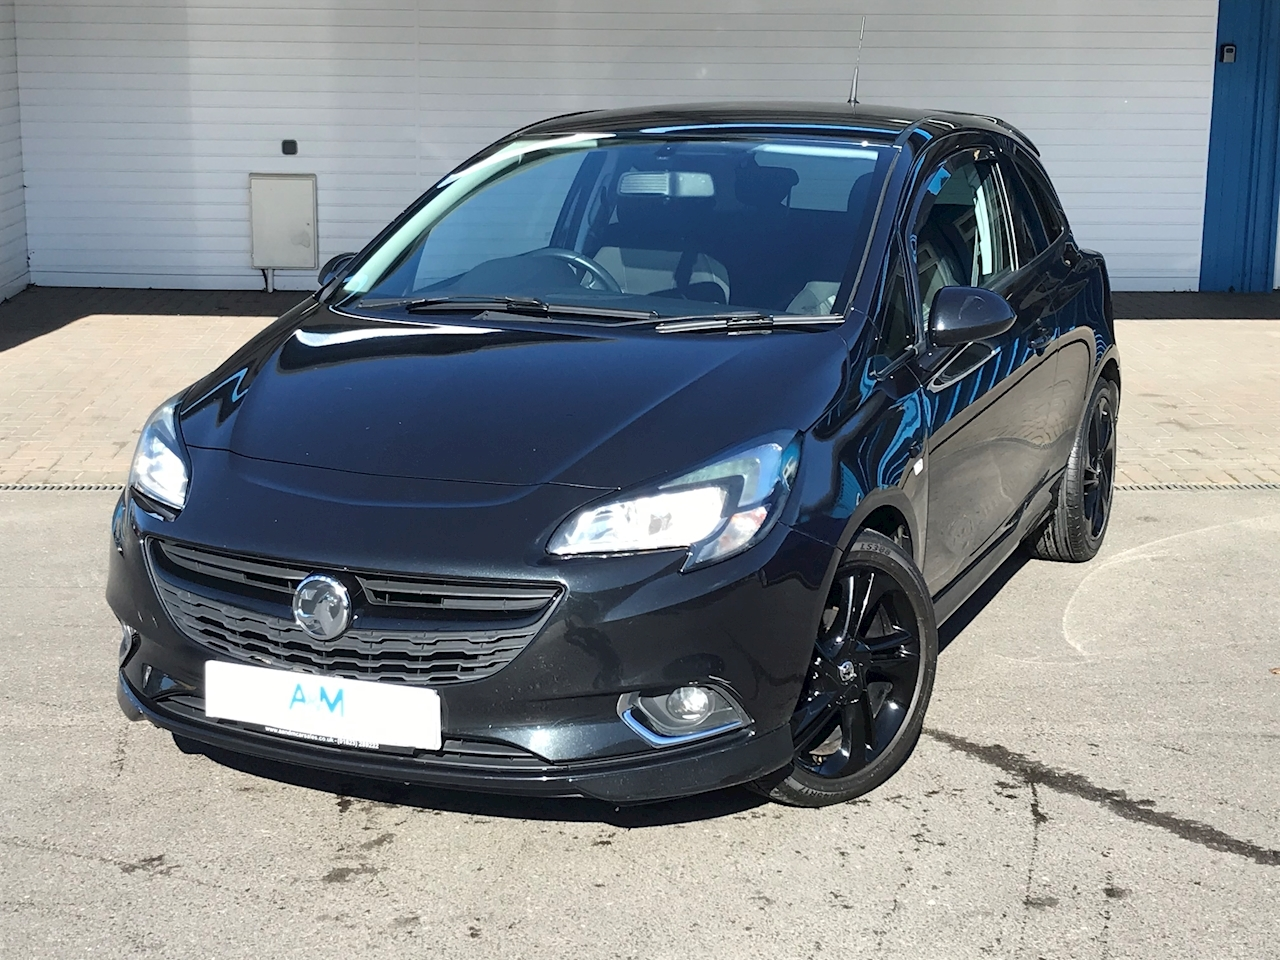 Vauxhall 1.4i ecoFLEX Limited Edition Hatchback 3dr Petrol (90 ps)